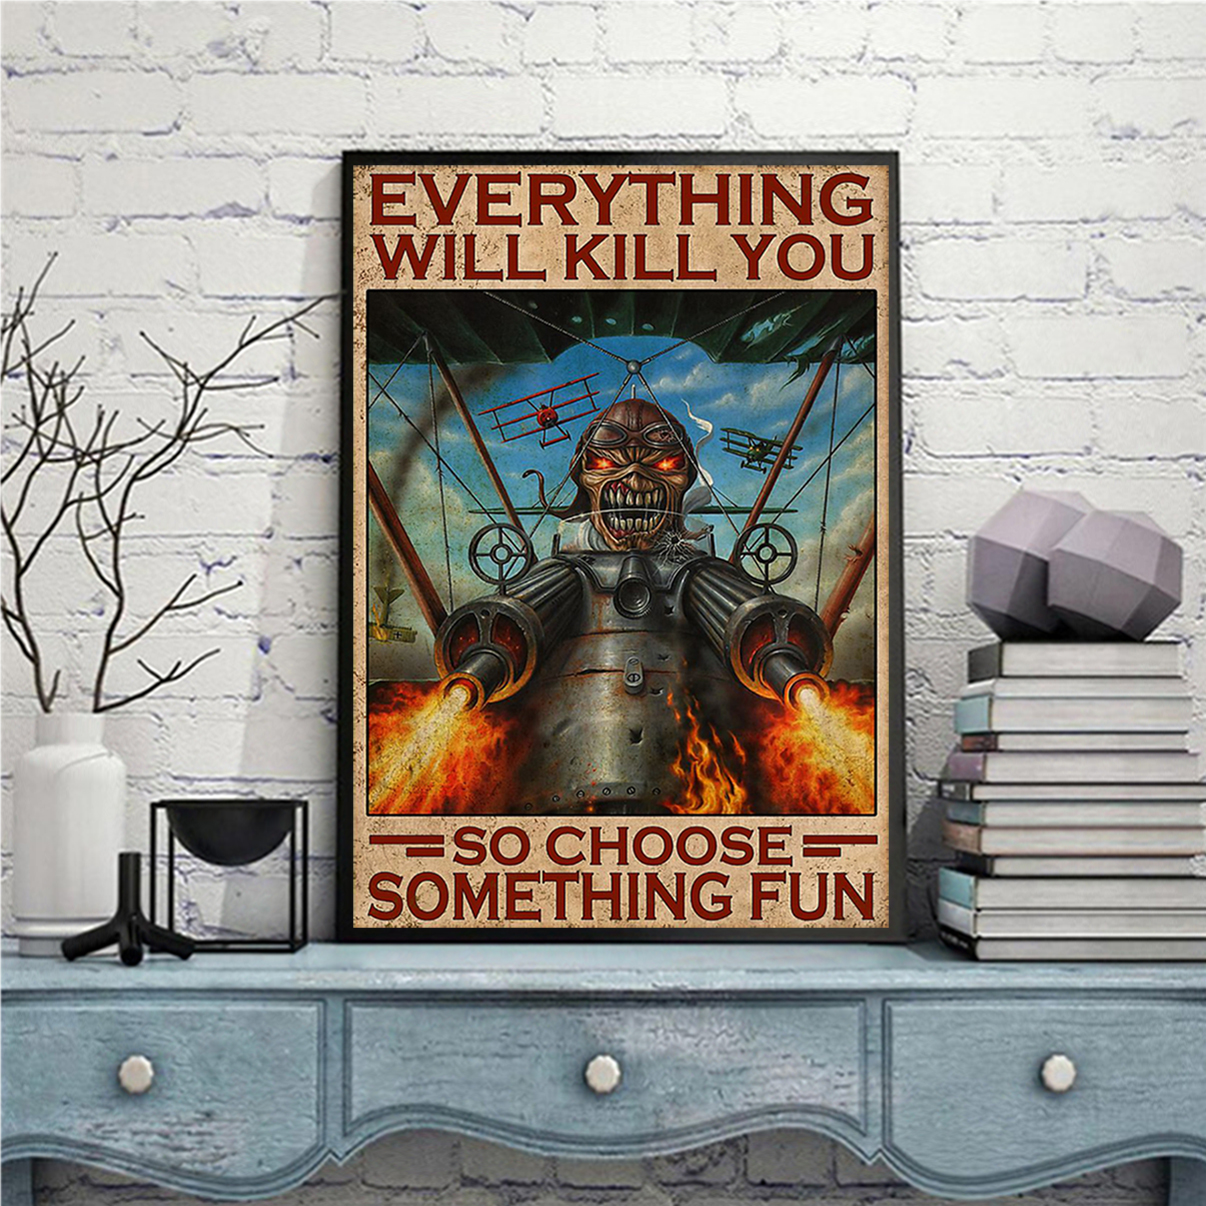 Iron maiden fighter pilot everything will kill you so choose something fun poster A1